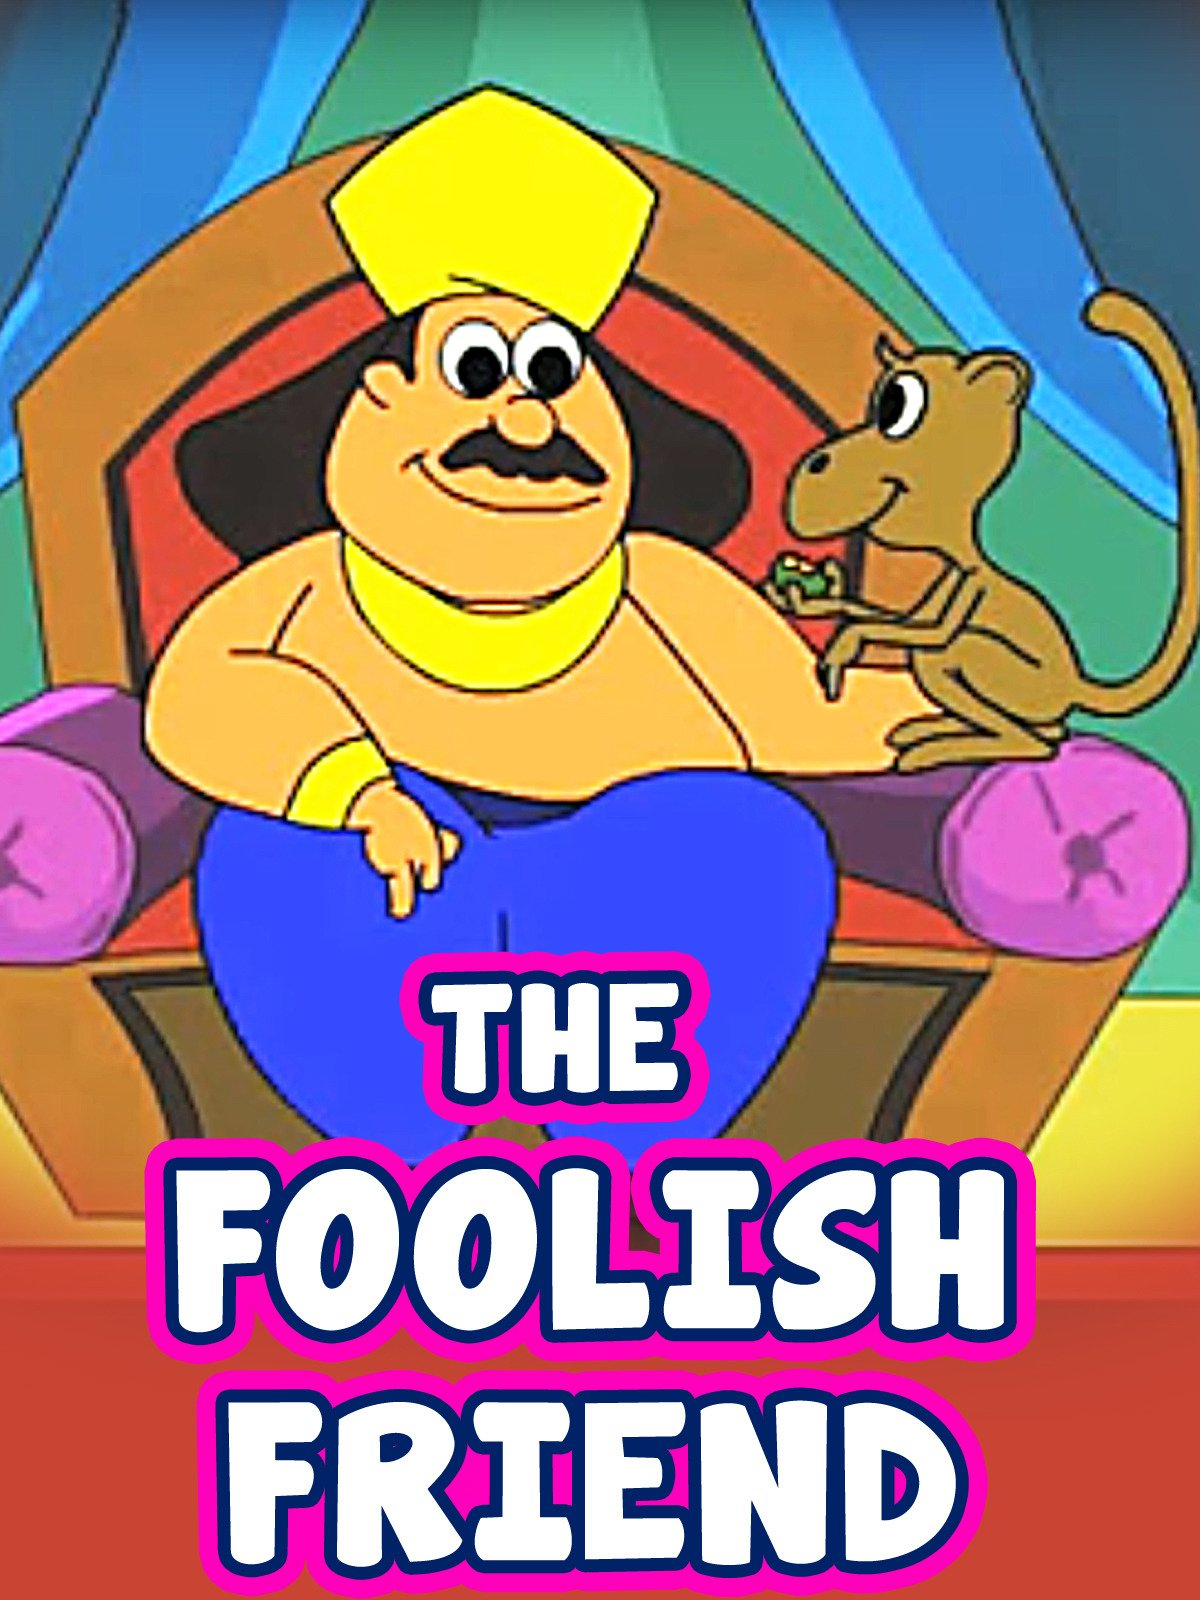 The Foolish Friend